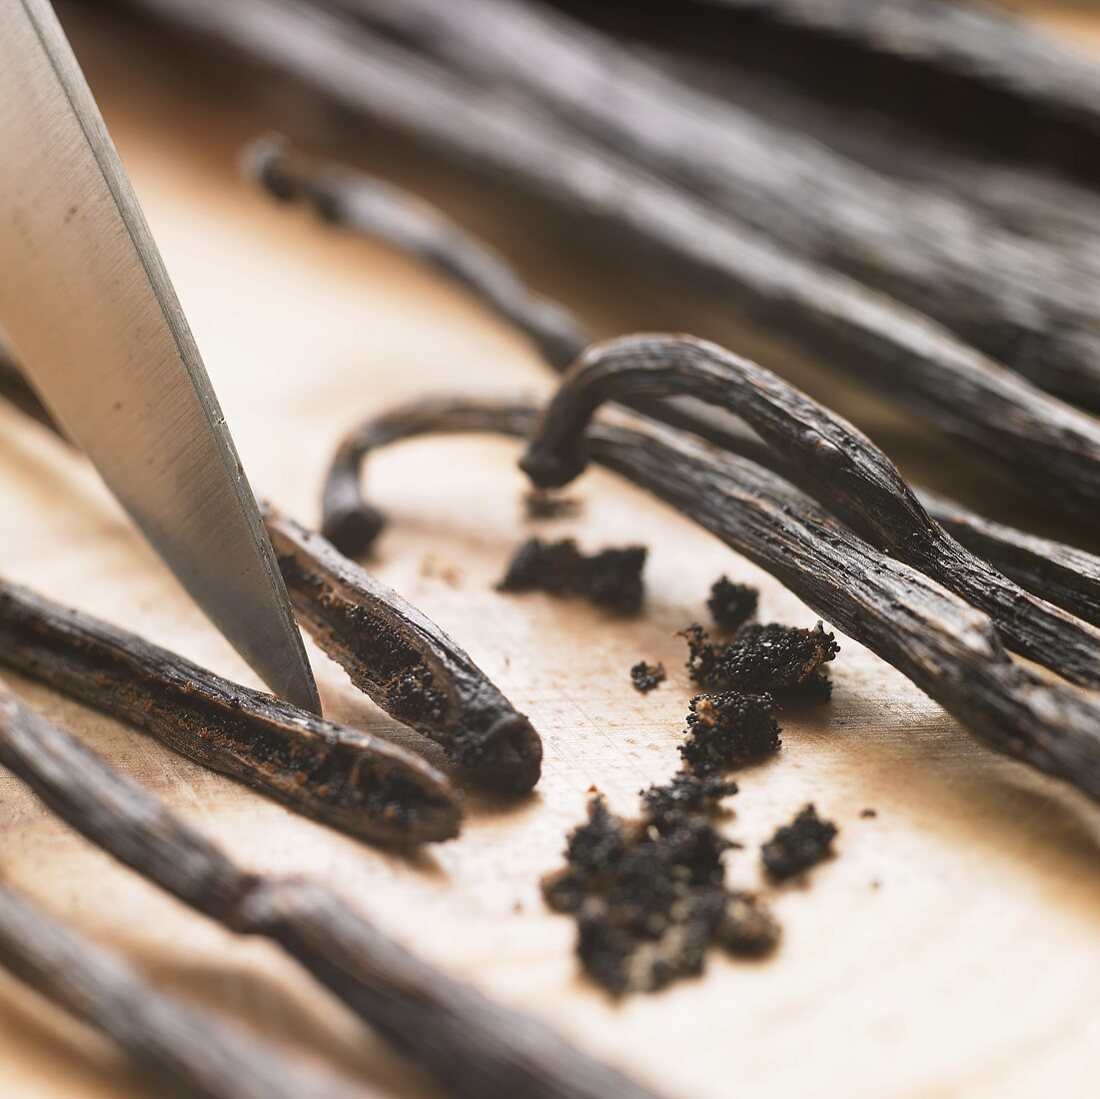 Scraping out vanilla seeds